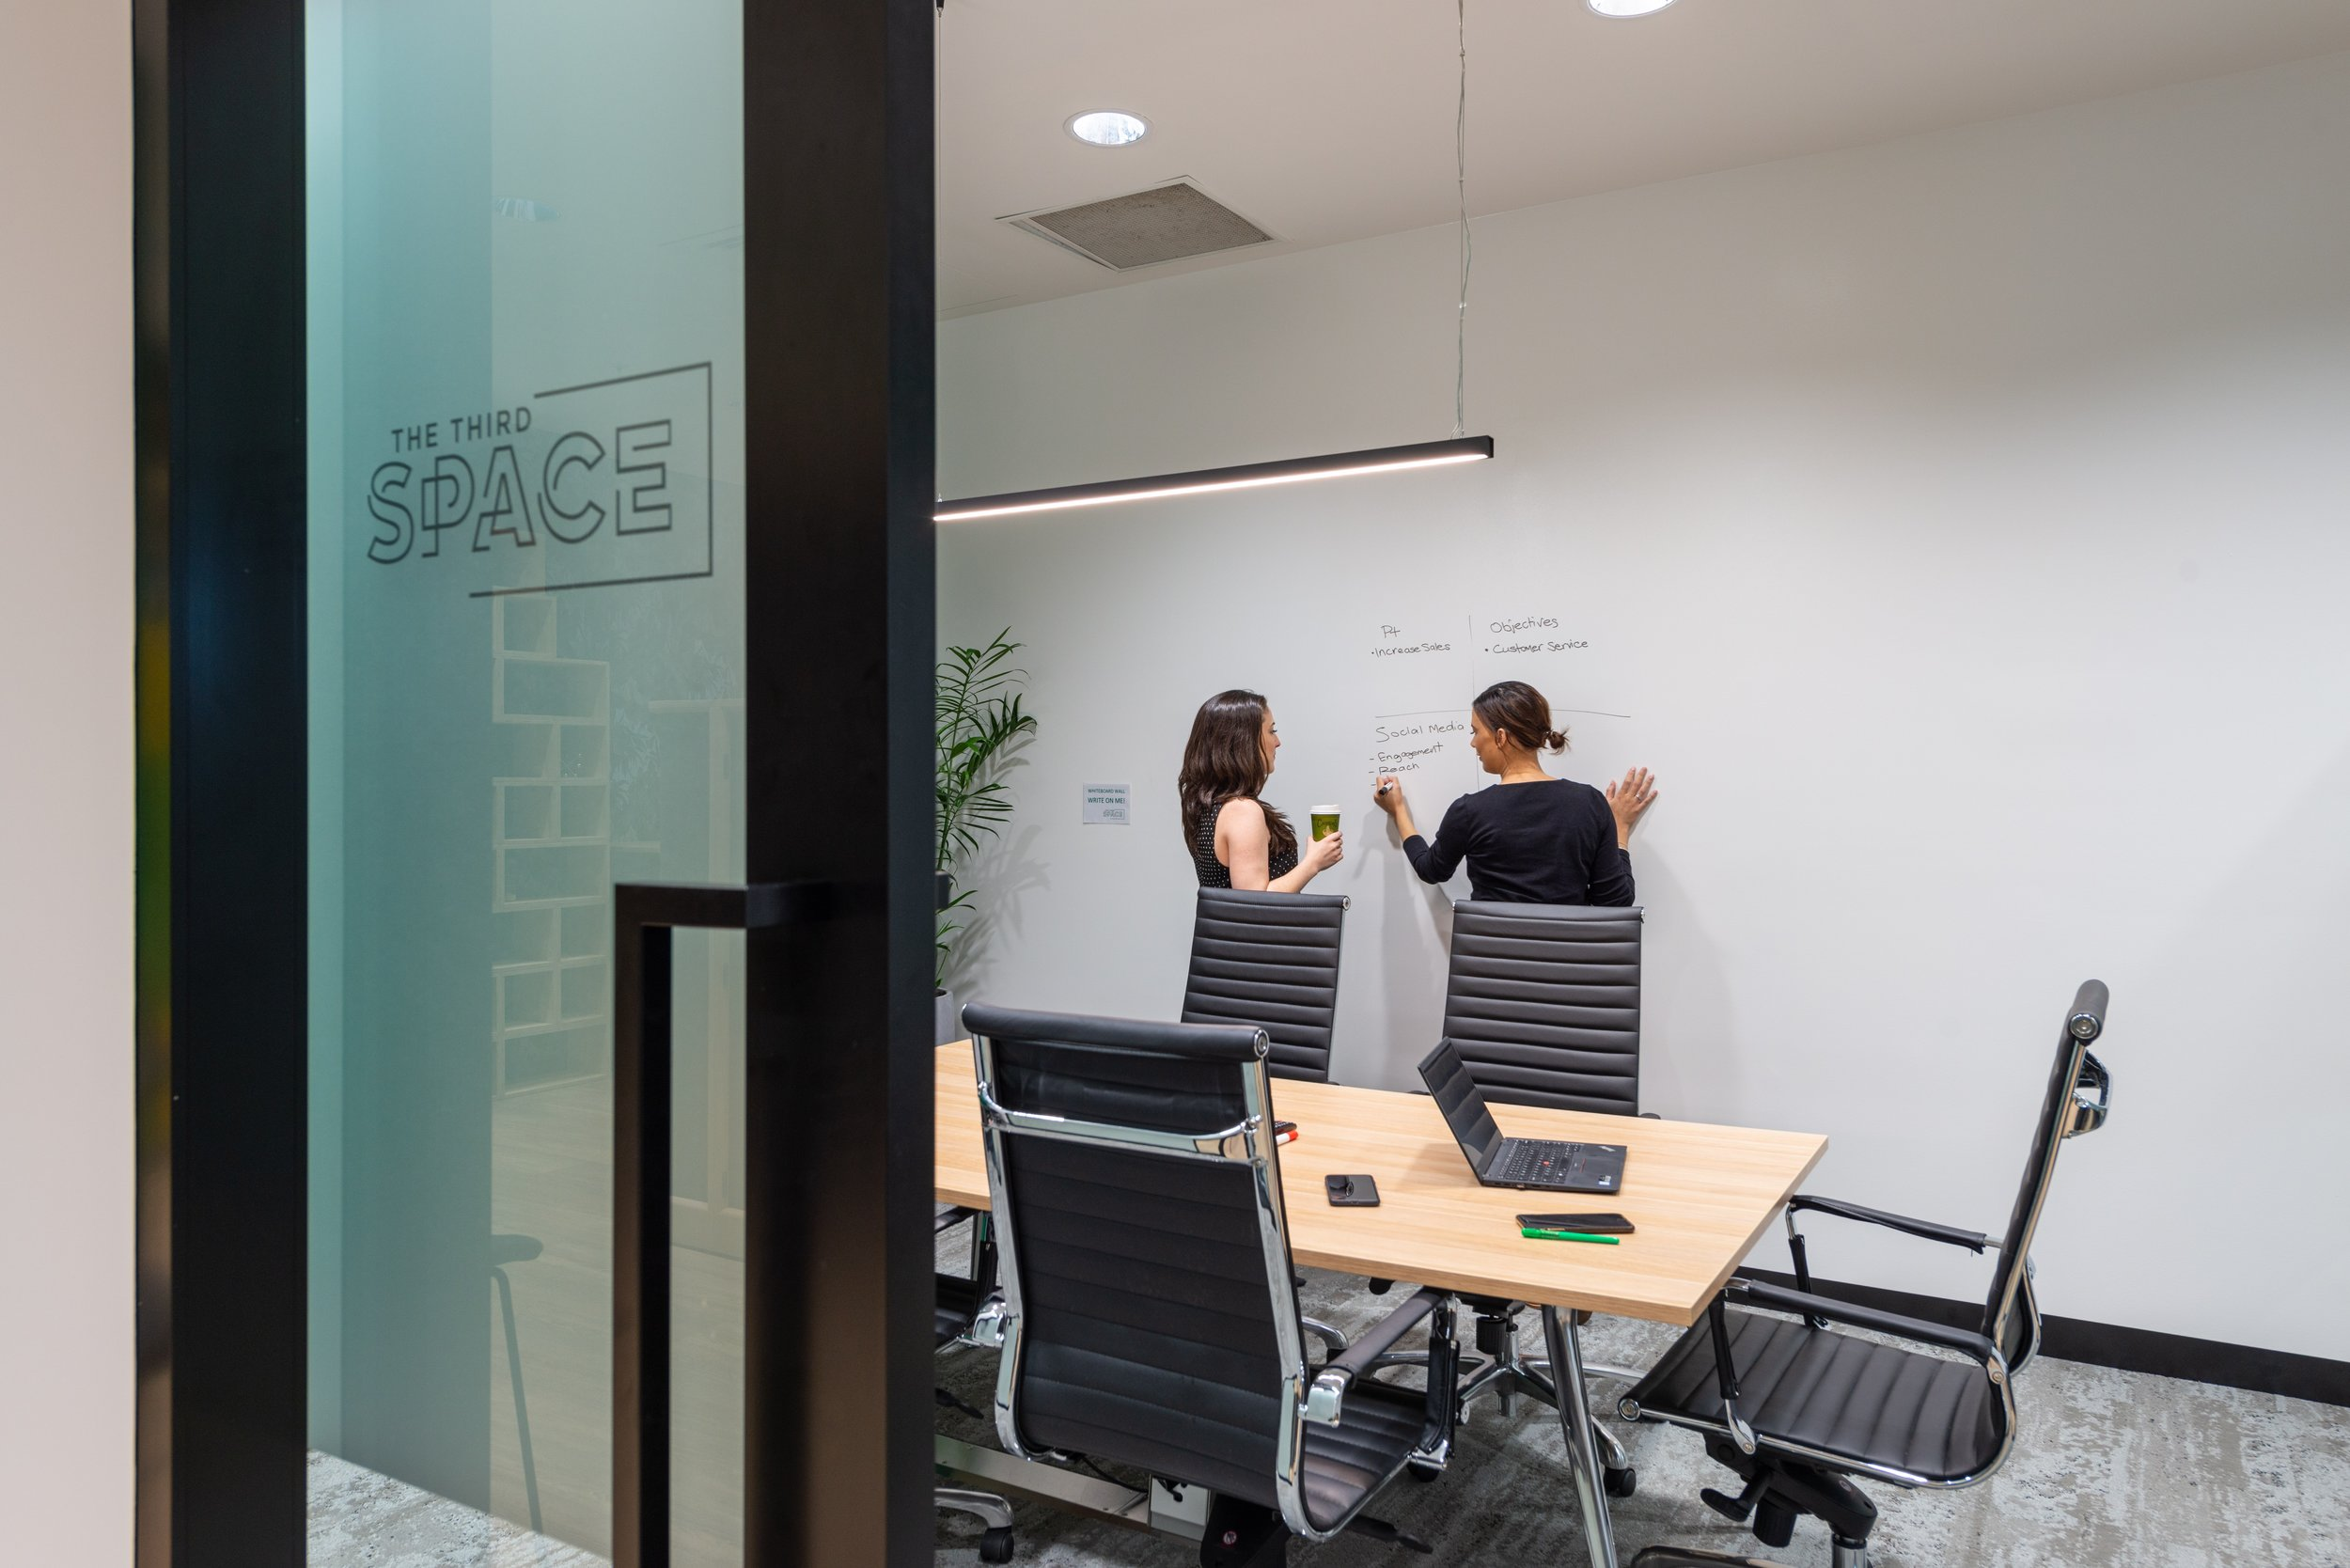 Meeting Room: - Hourly Rate - $60.00Daily Rate - $360.00Minimum Booking - 1 Hour Members - 50% offRoom Inclusions: Seats 6 people   TV   Whiteboard Wall   Water & Mints  